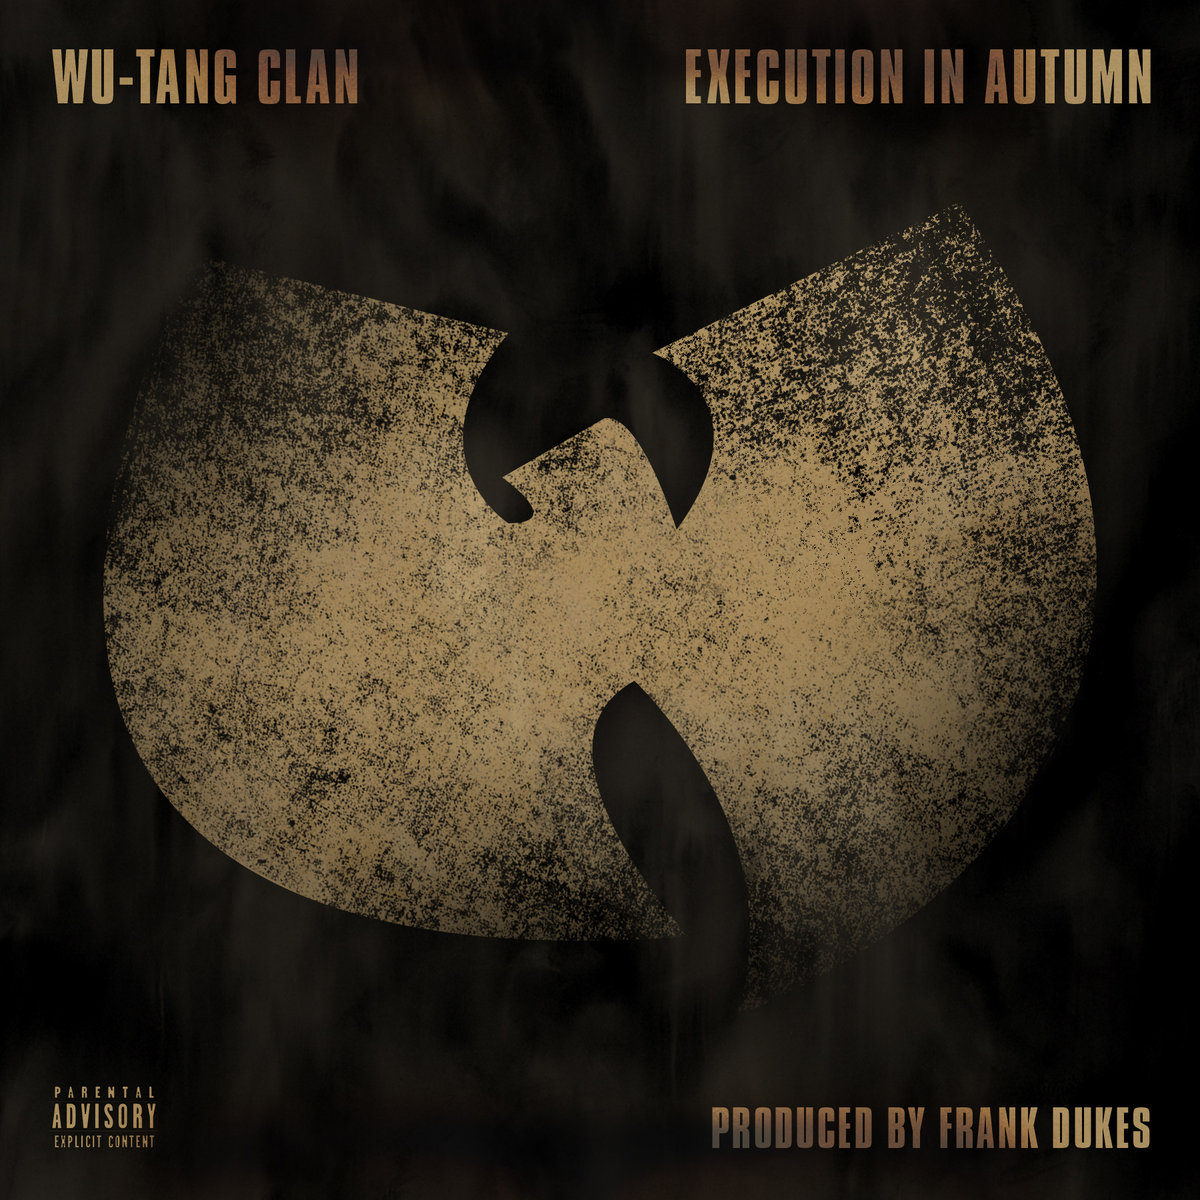 Wu-Tang Clan - Execution in Autumn cover